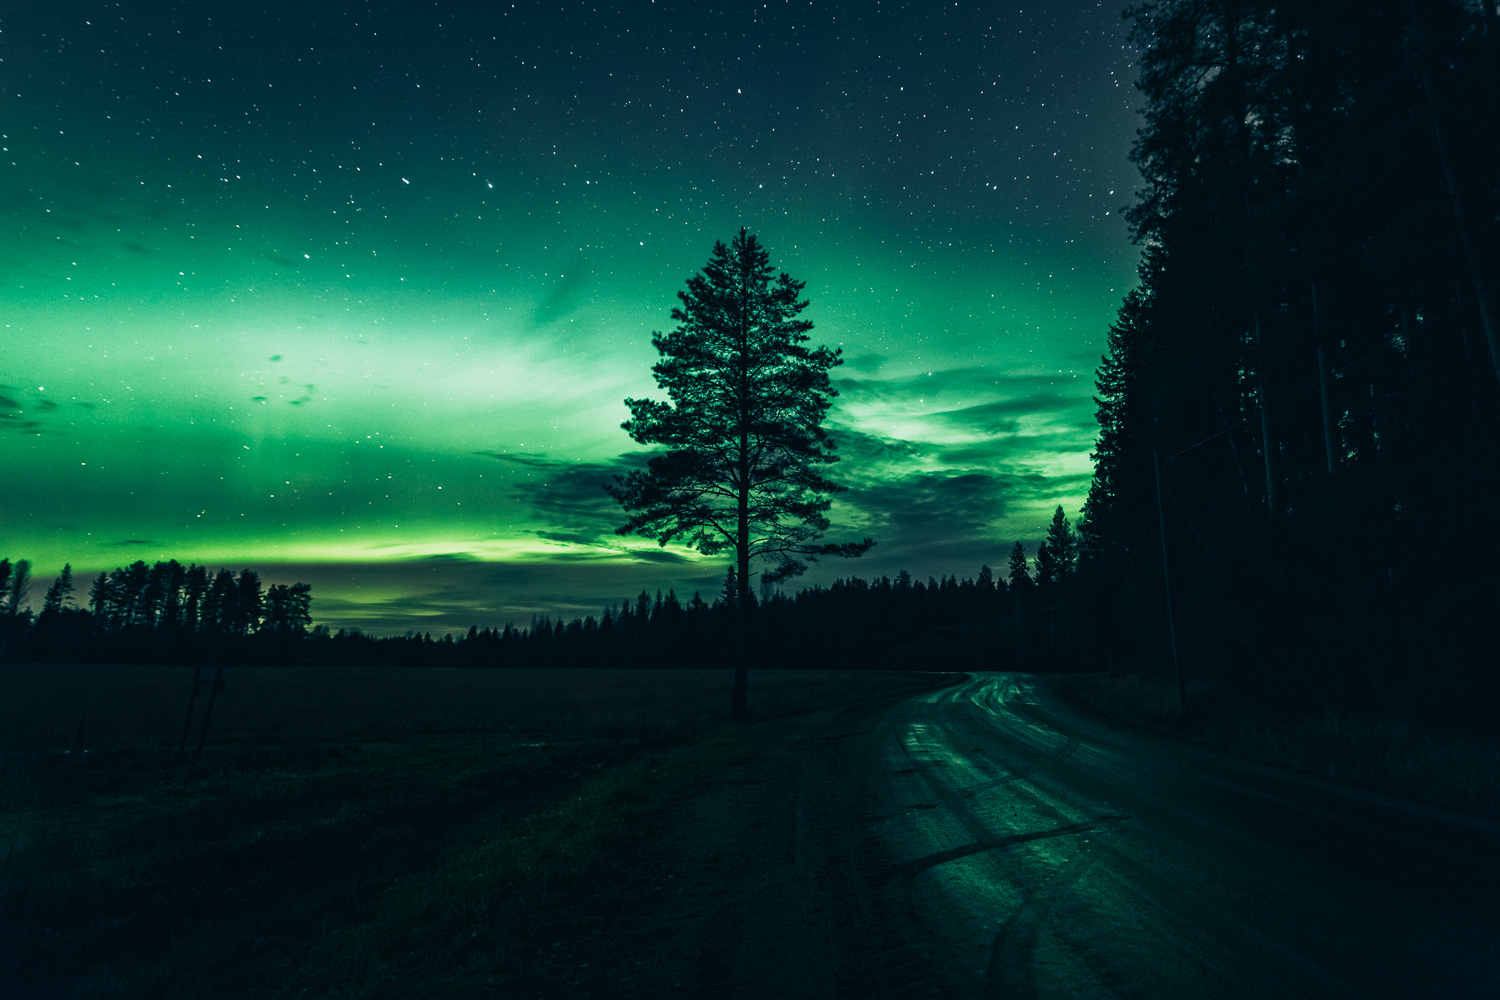 Another green night